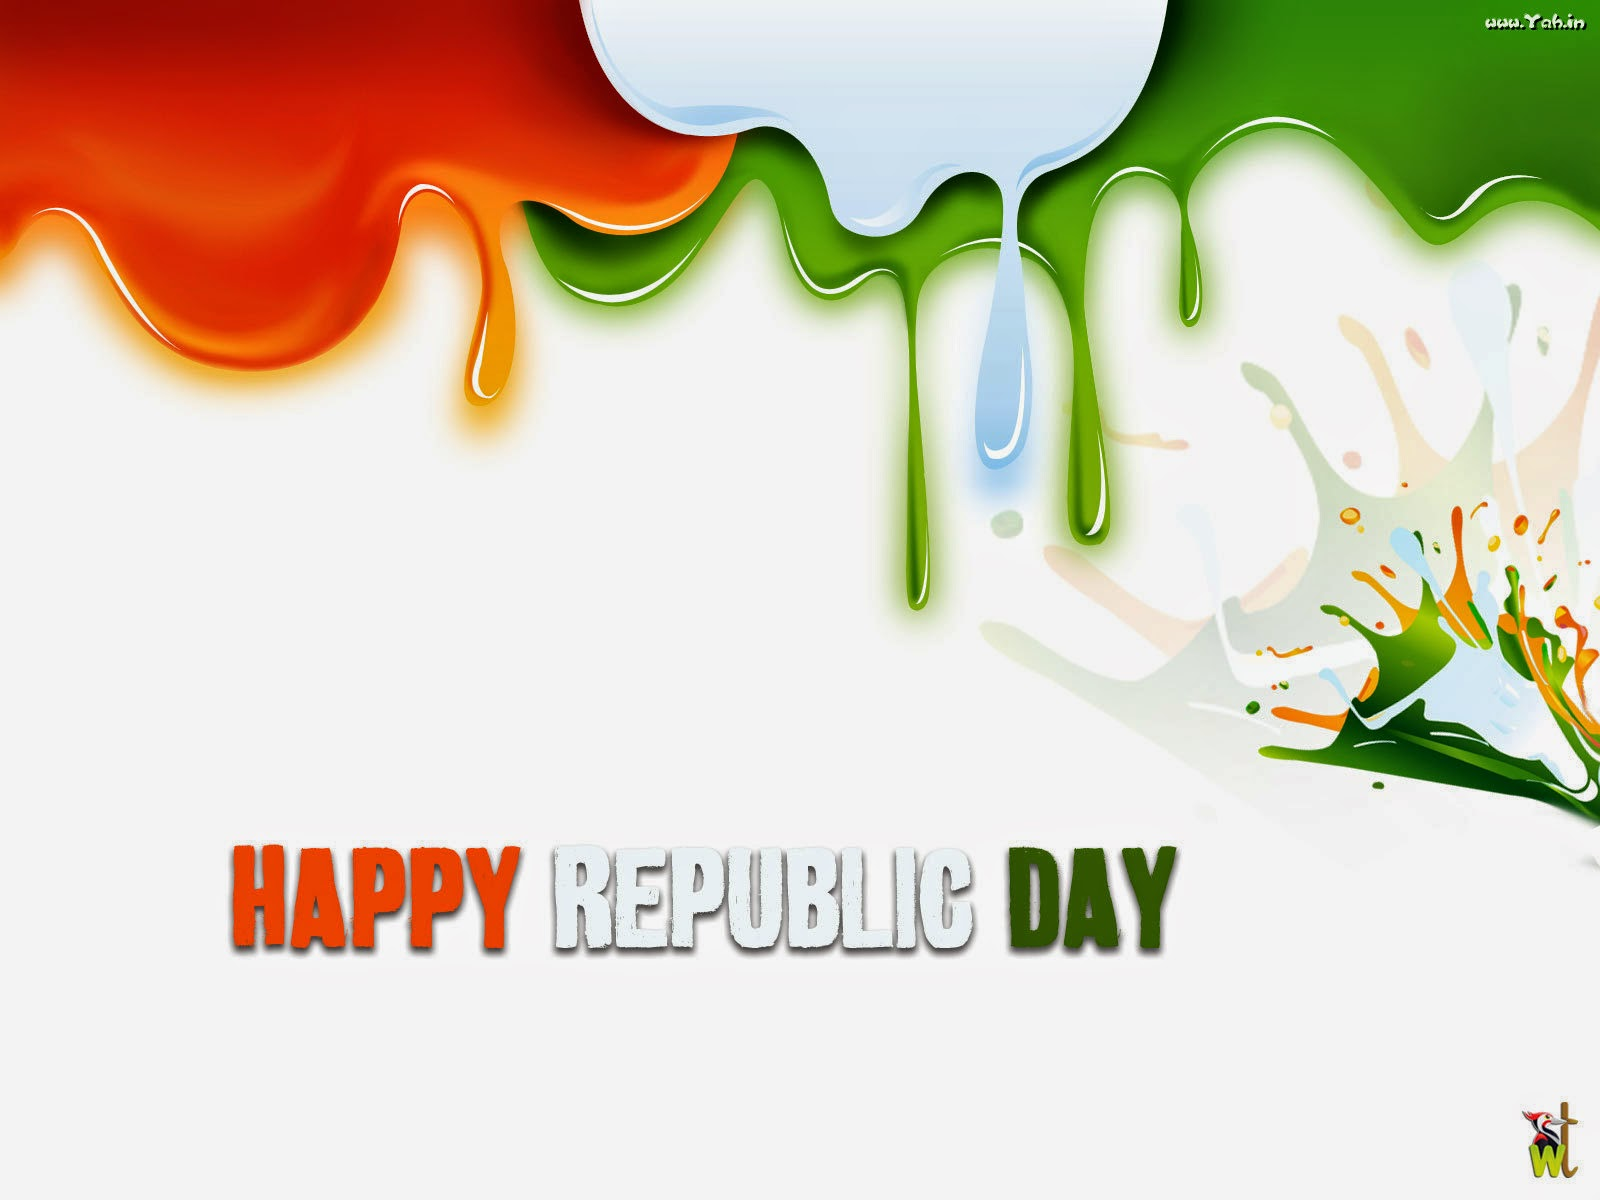 republic day images india